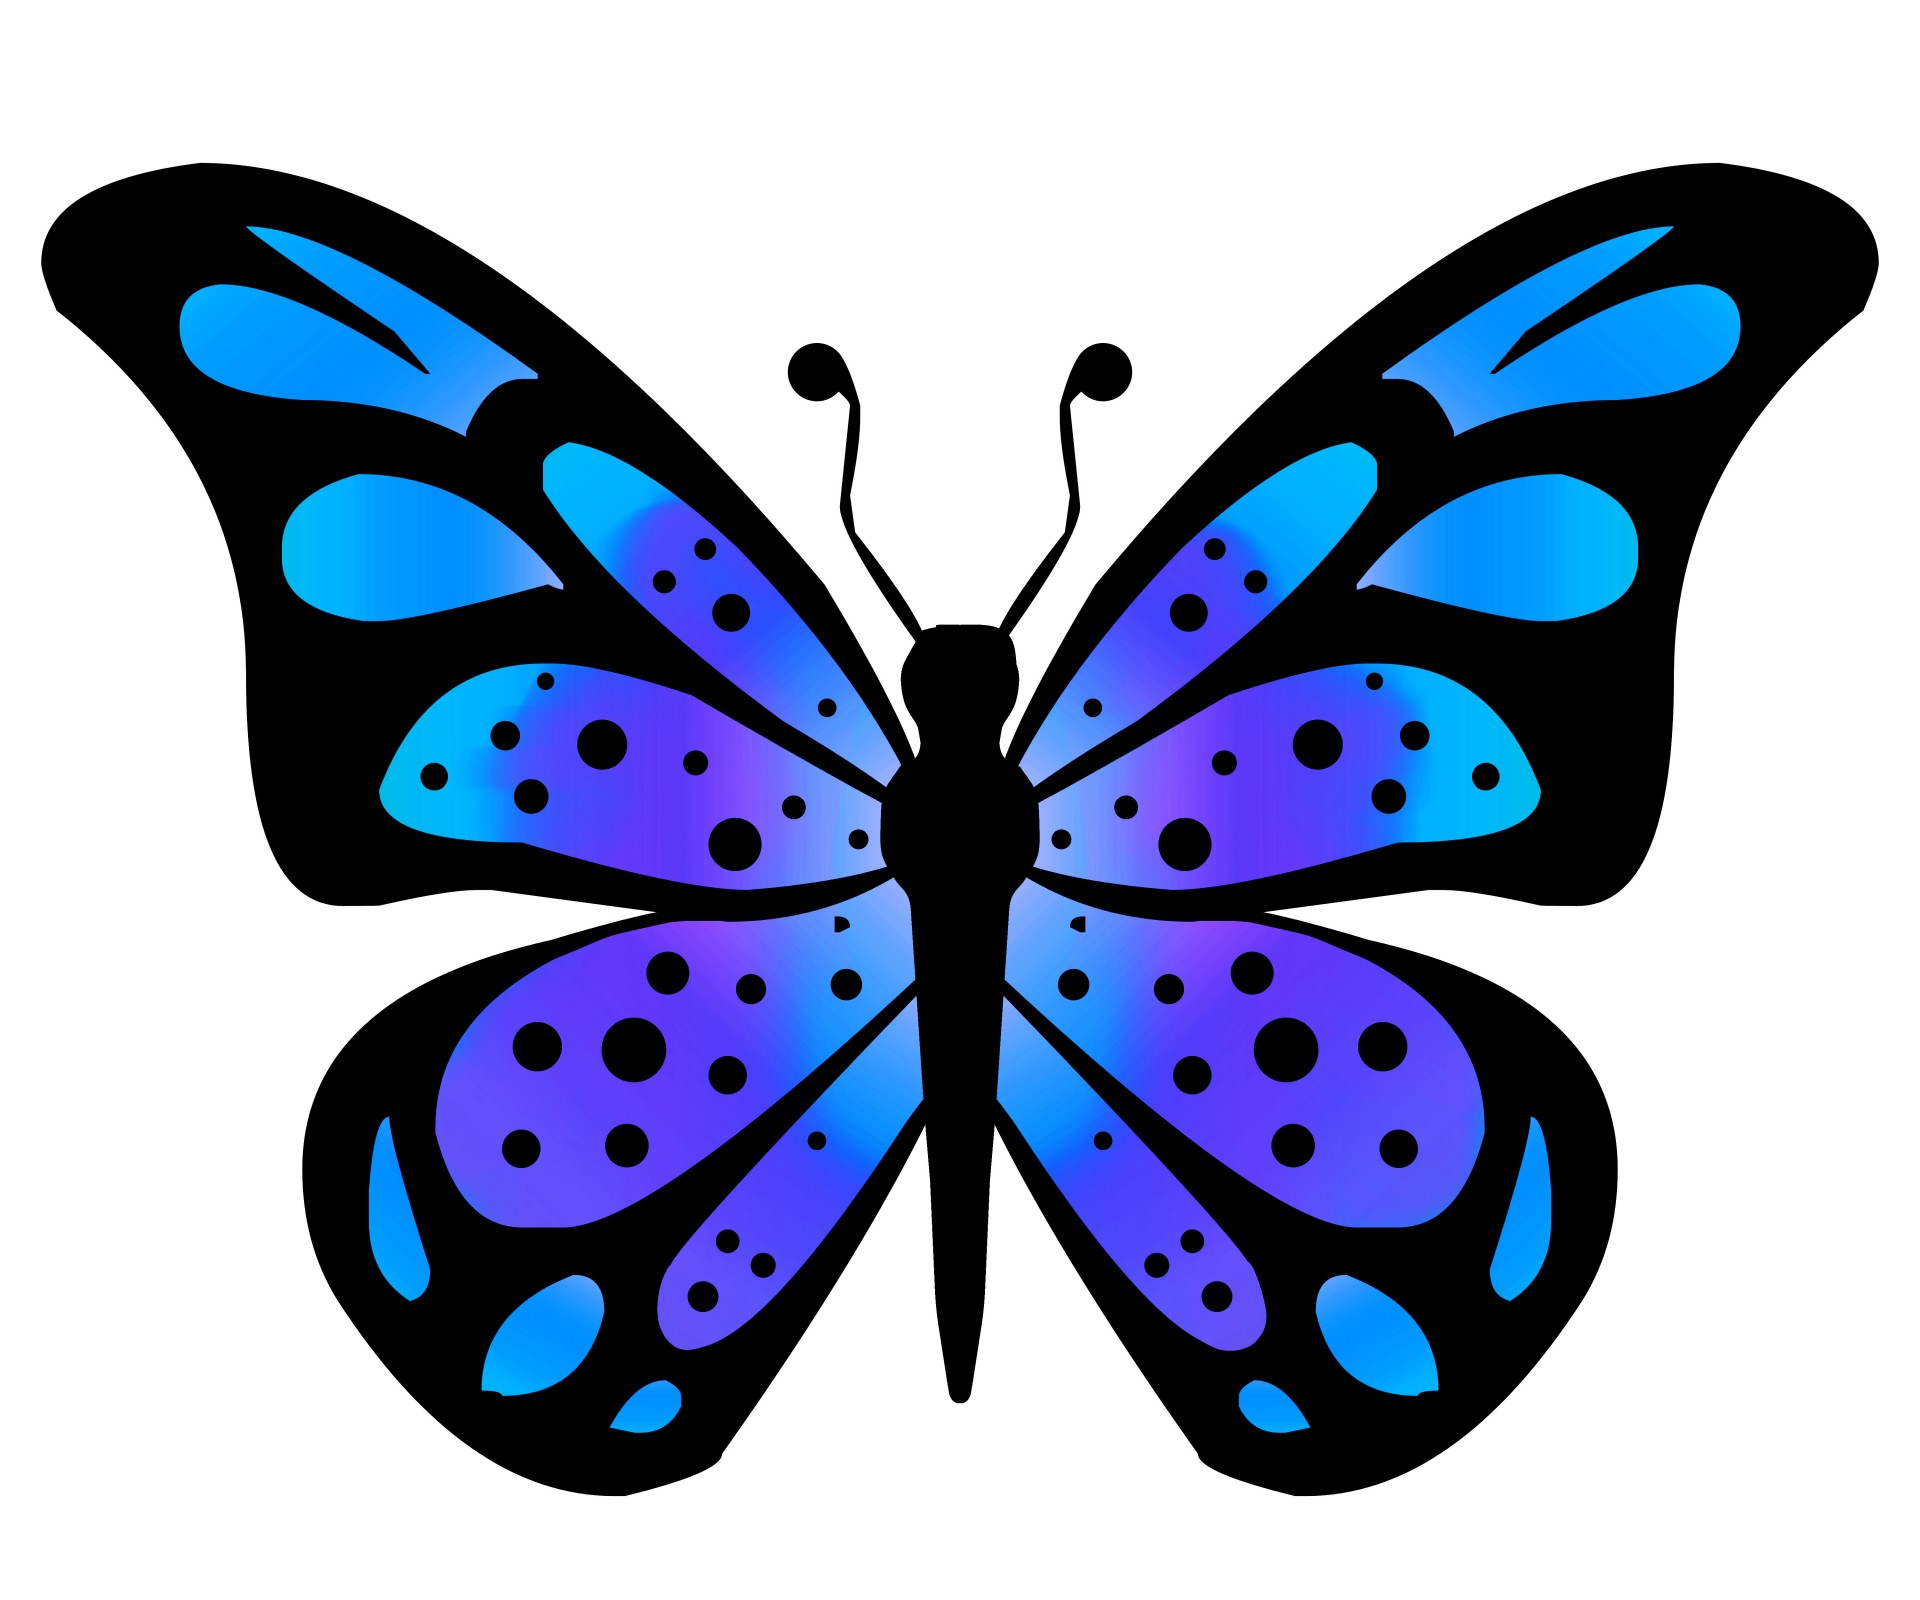 Clipart Butterfly 3 .-Clipart Butterfly 3 .-6